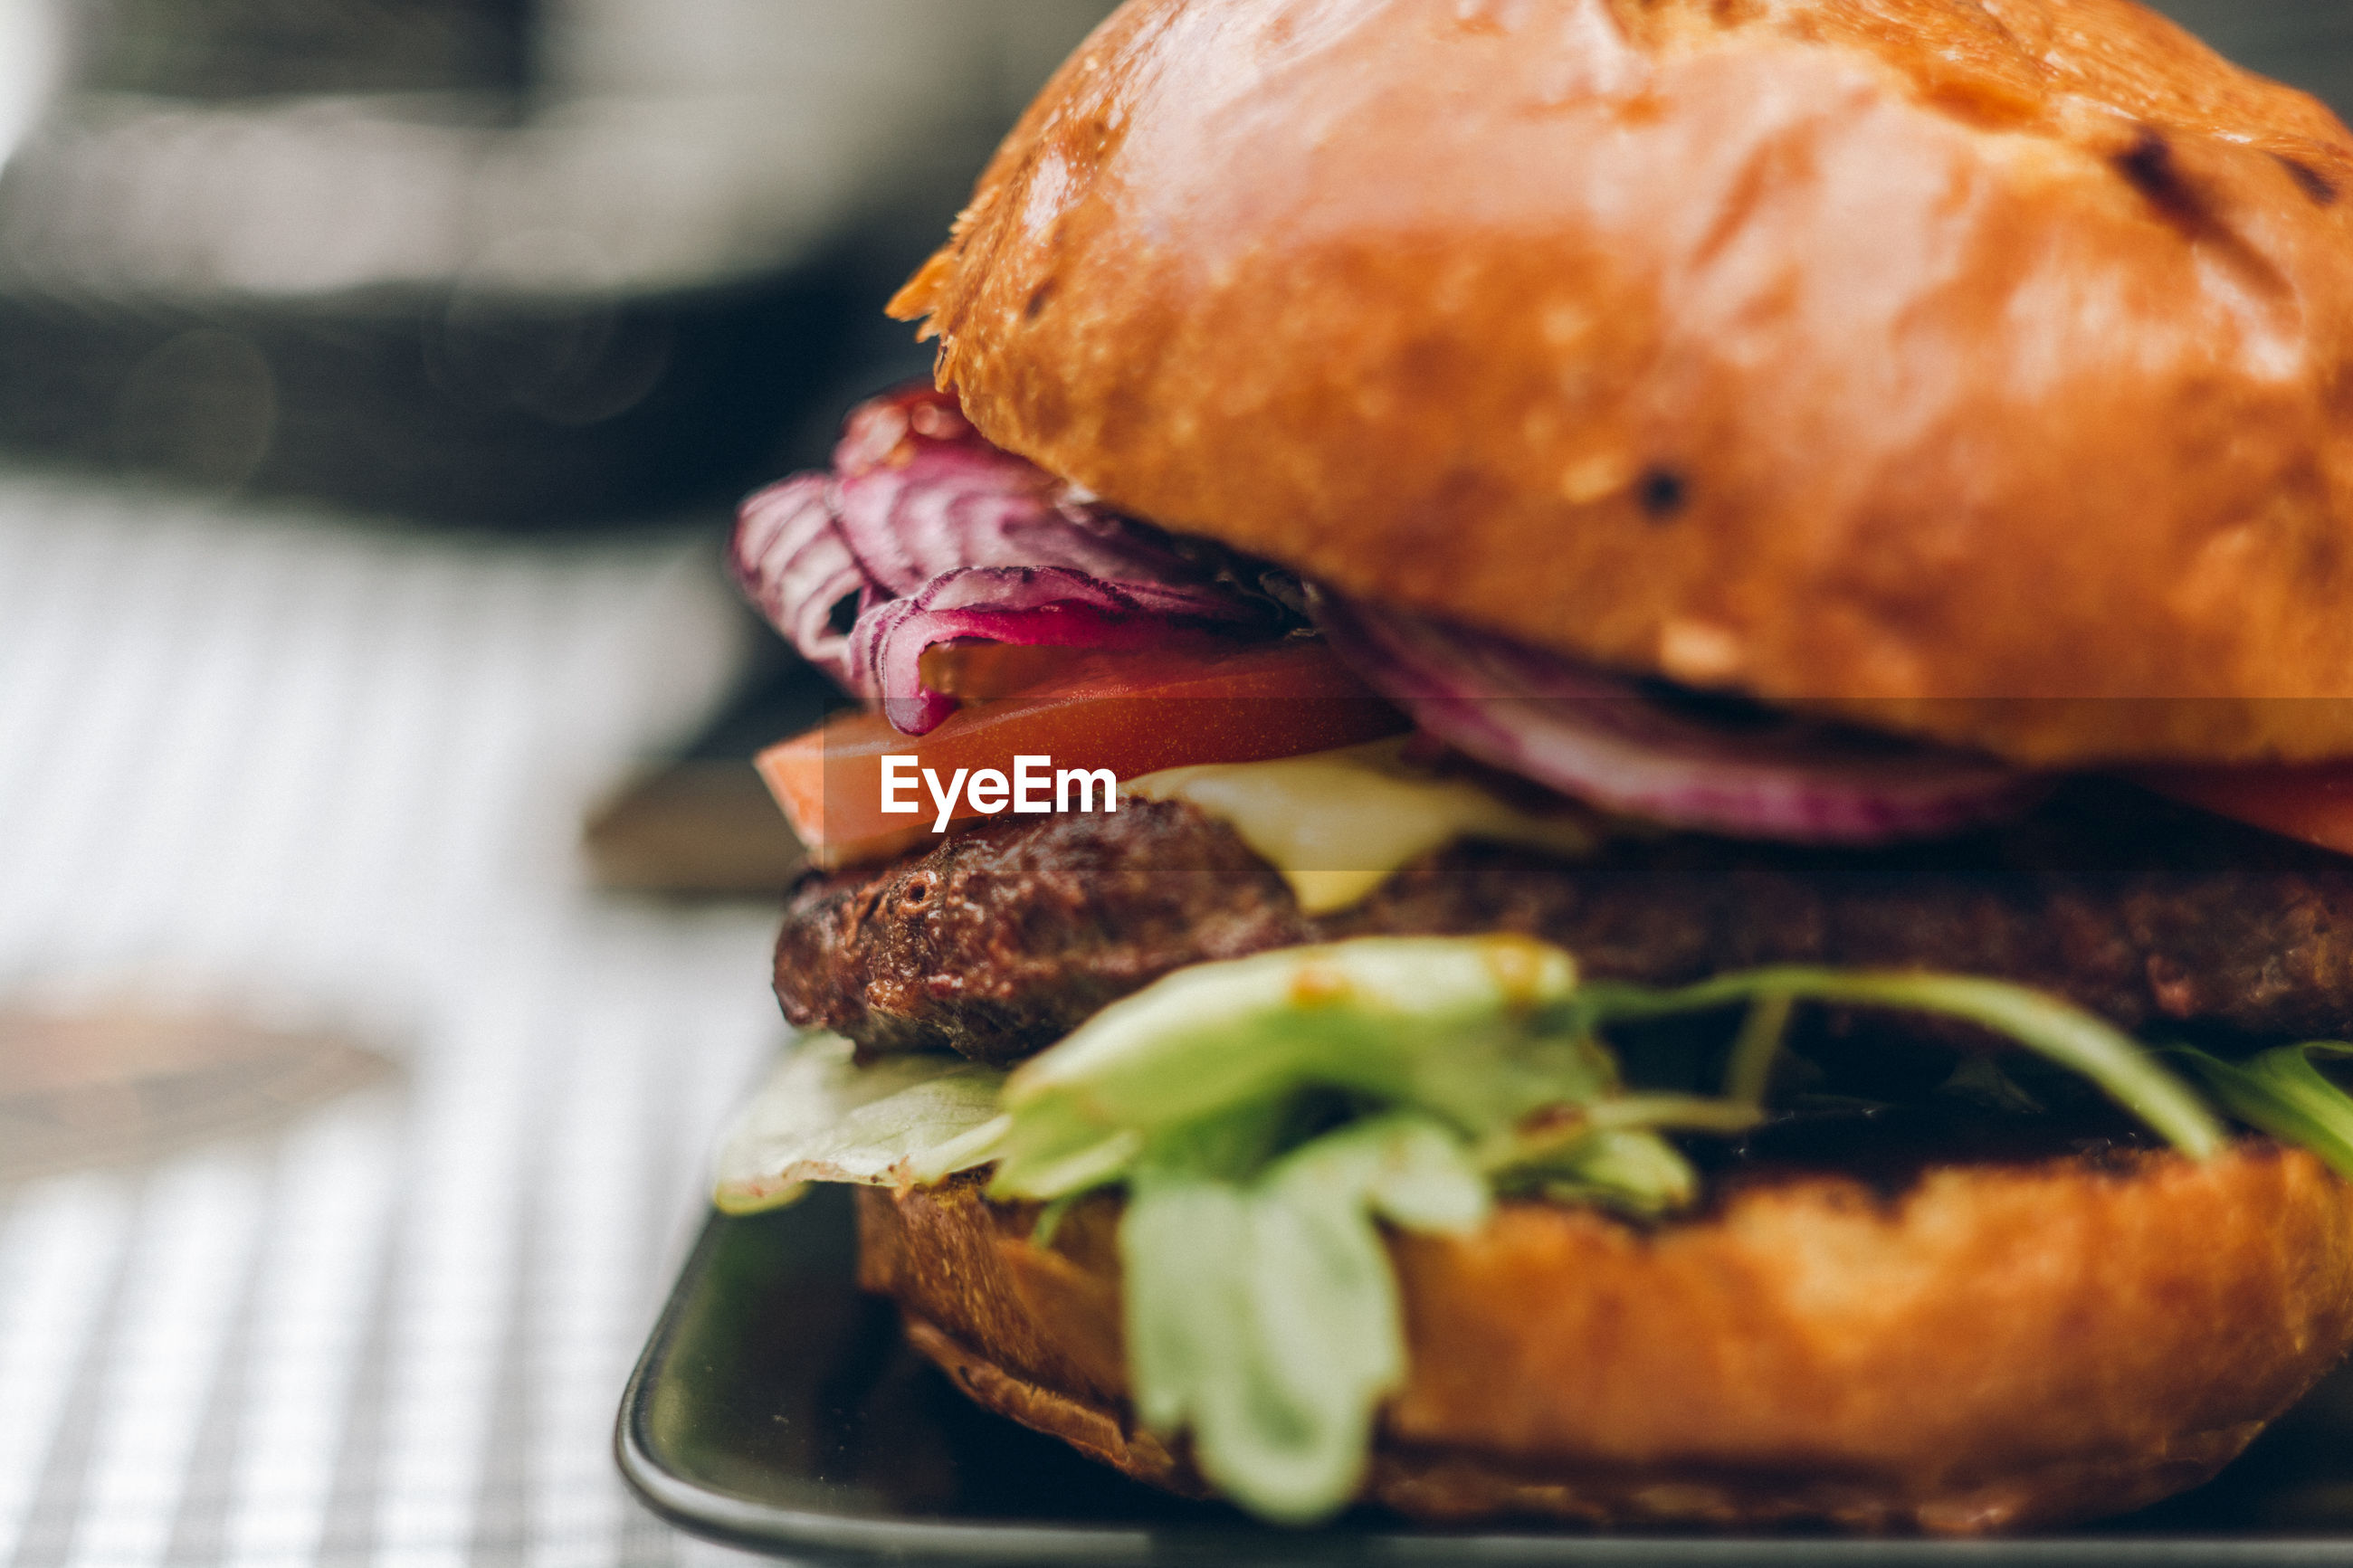 Close-up of hamburger in tray on table